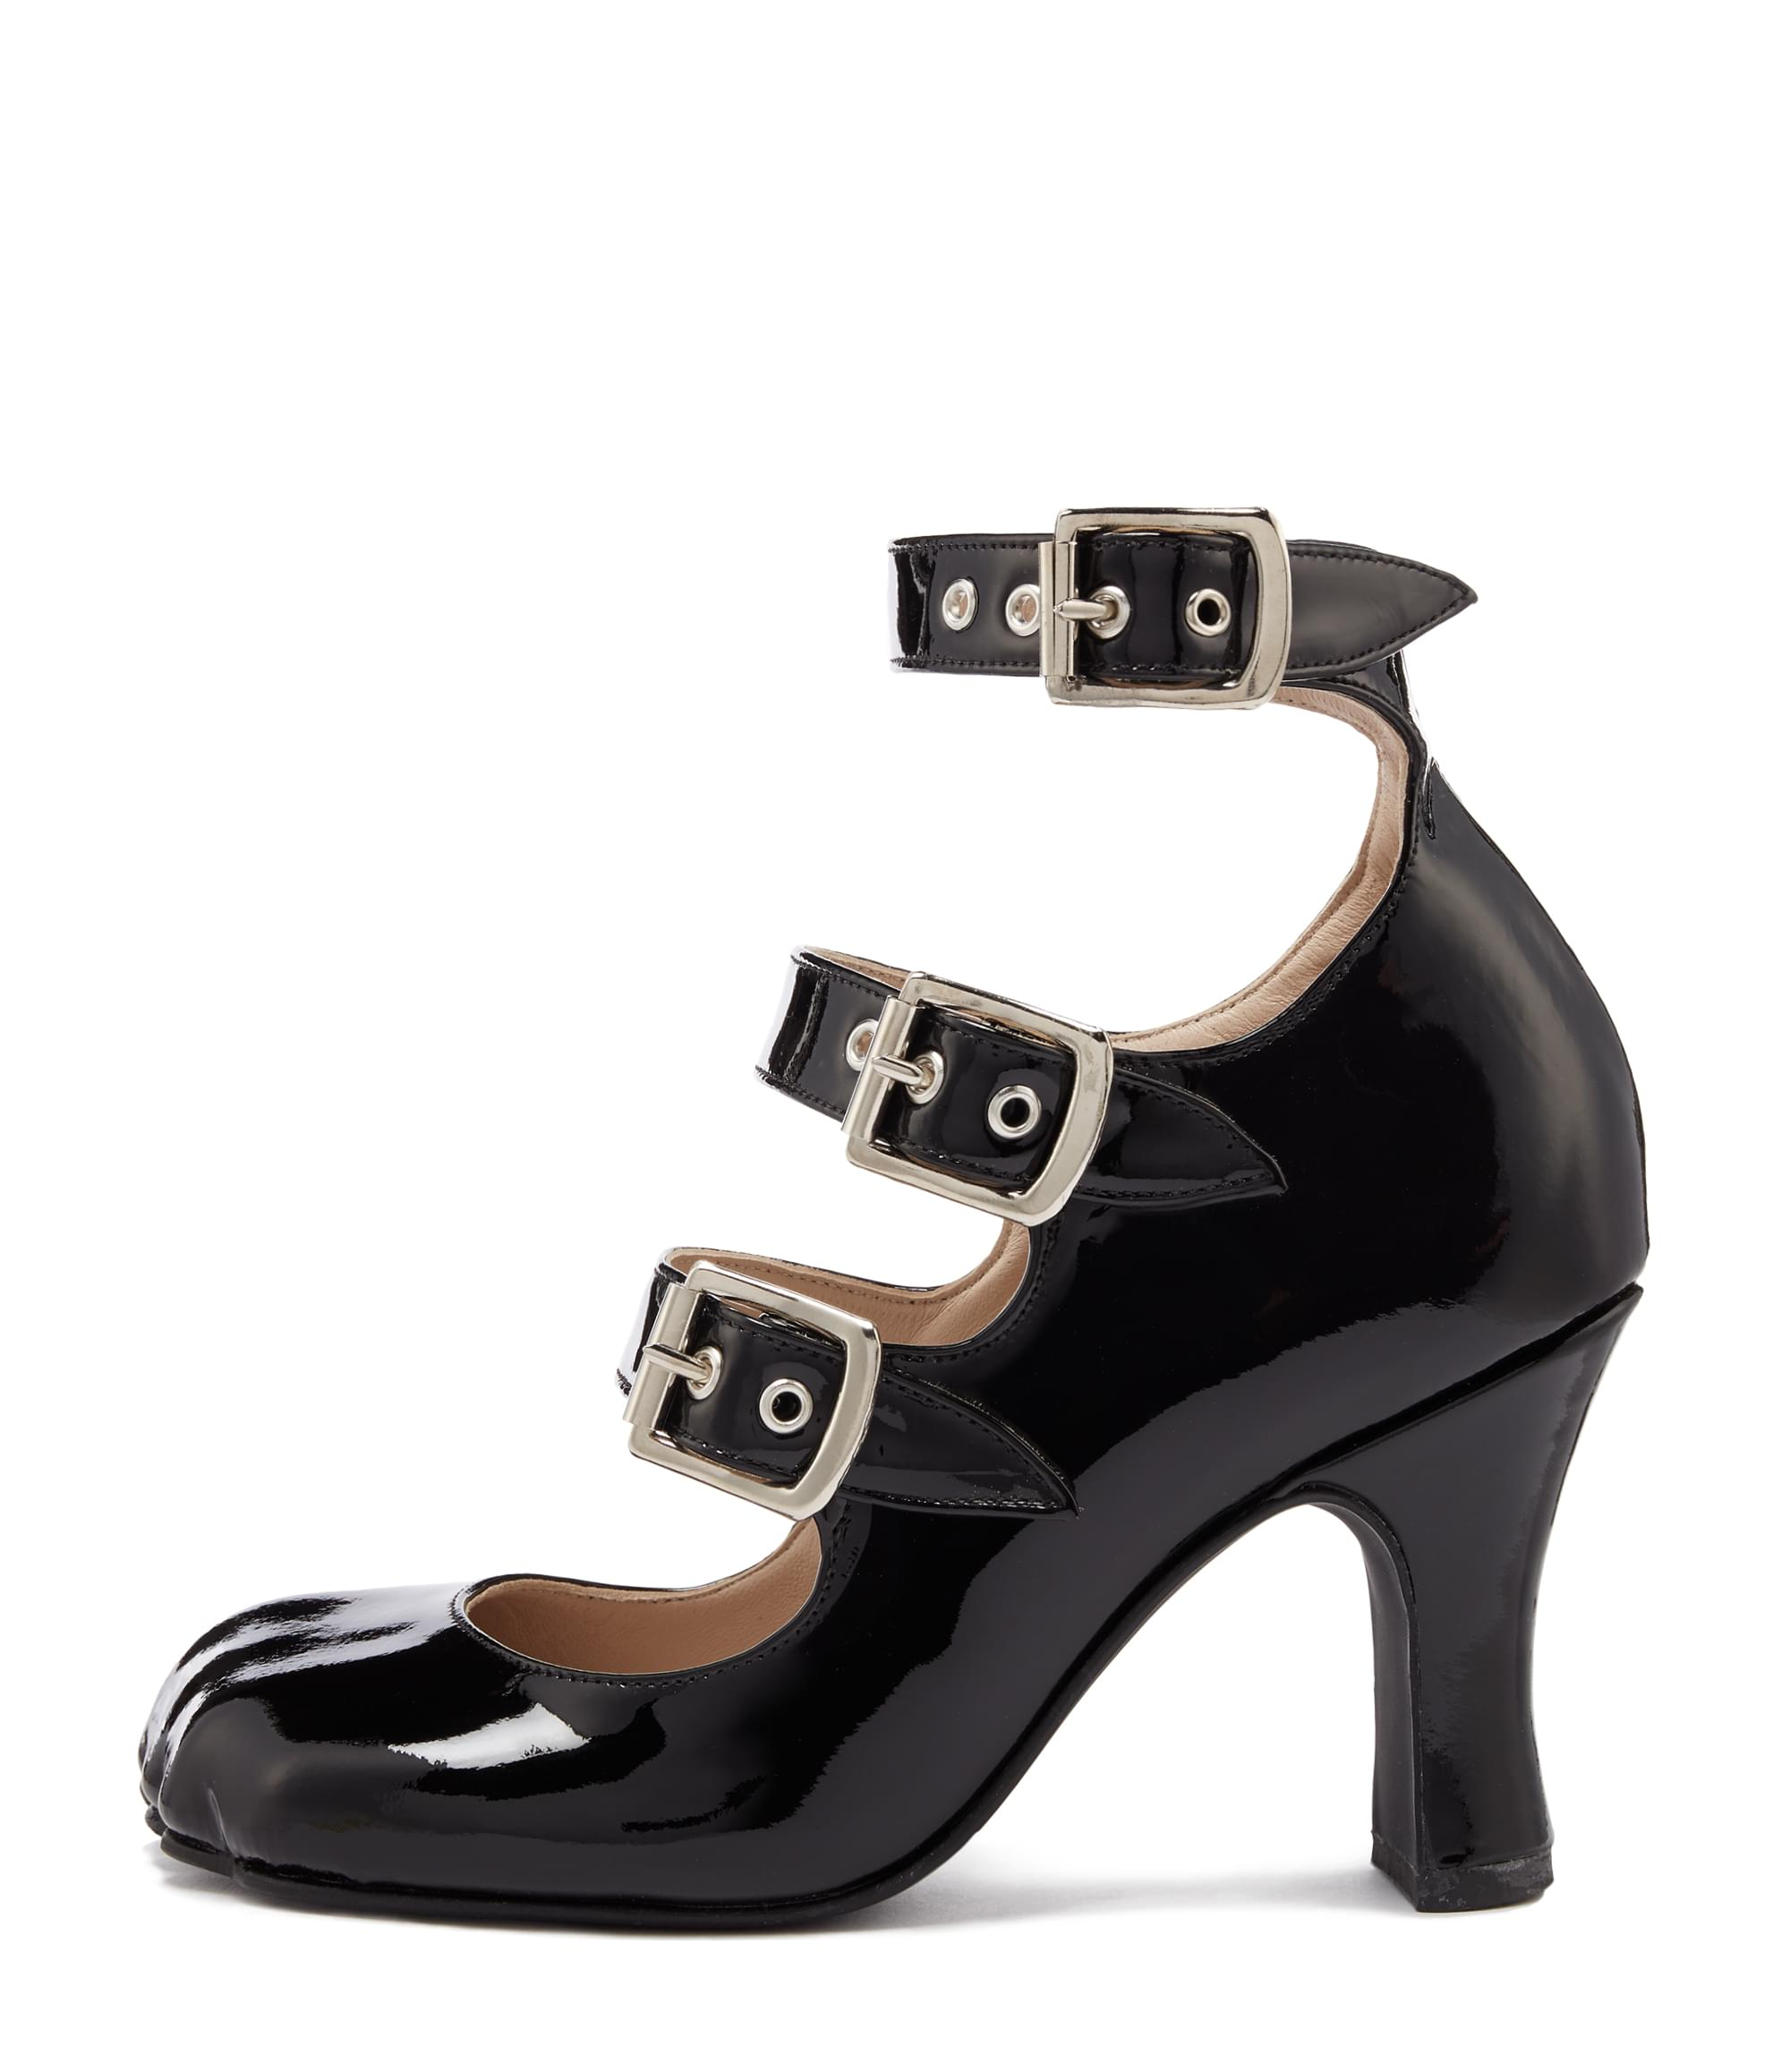 Vivienne Westwood Animal Toe 3 Strap Black Patent